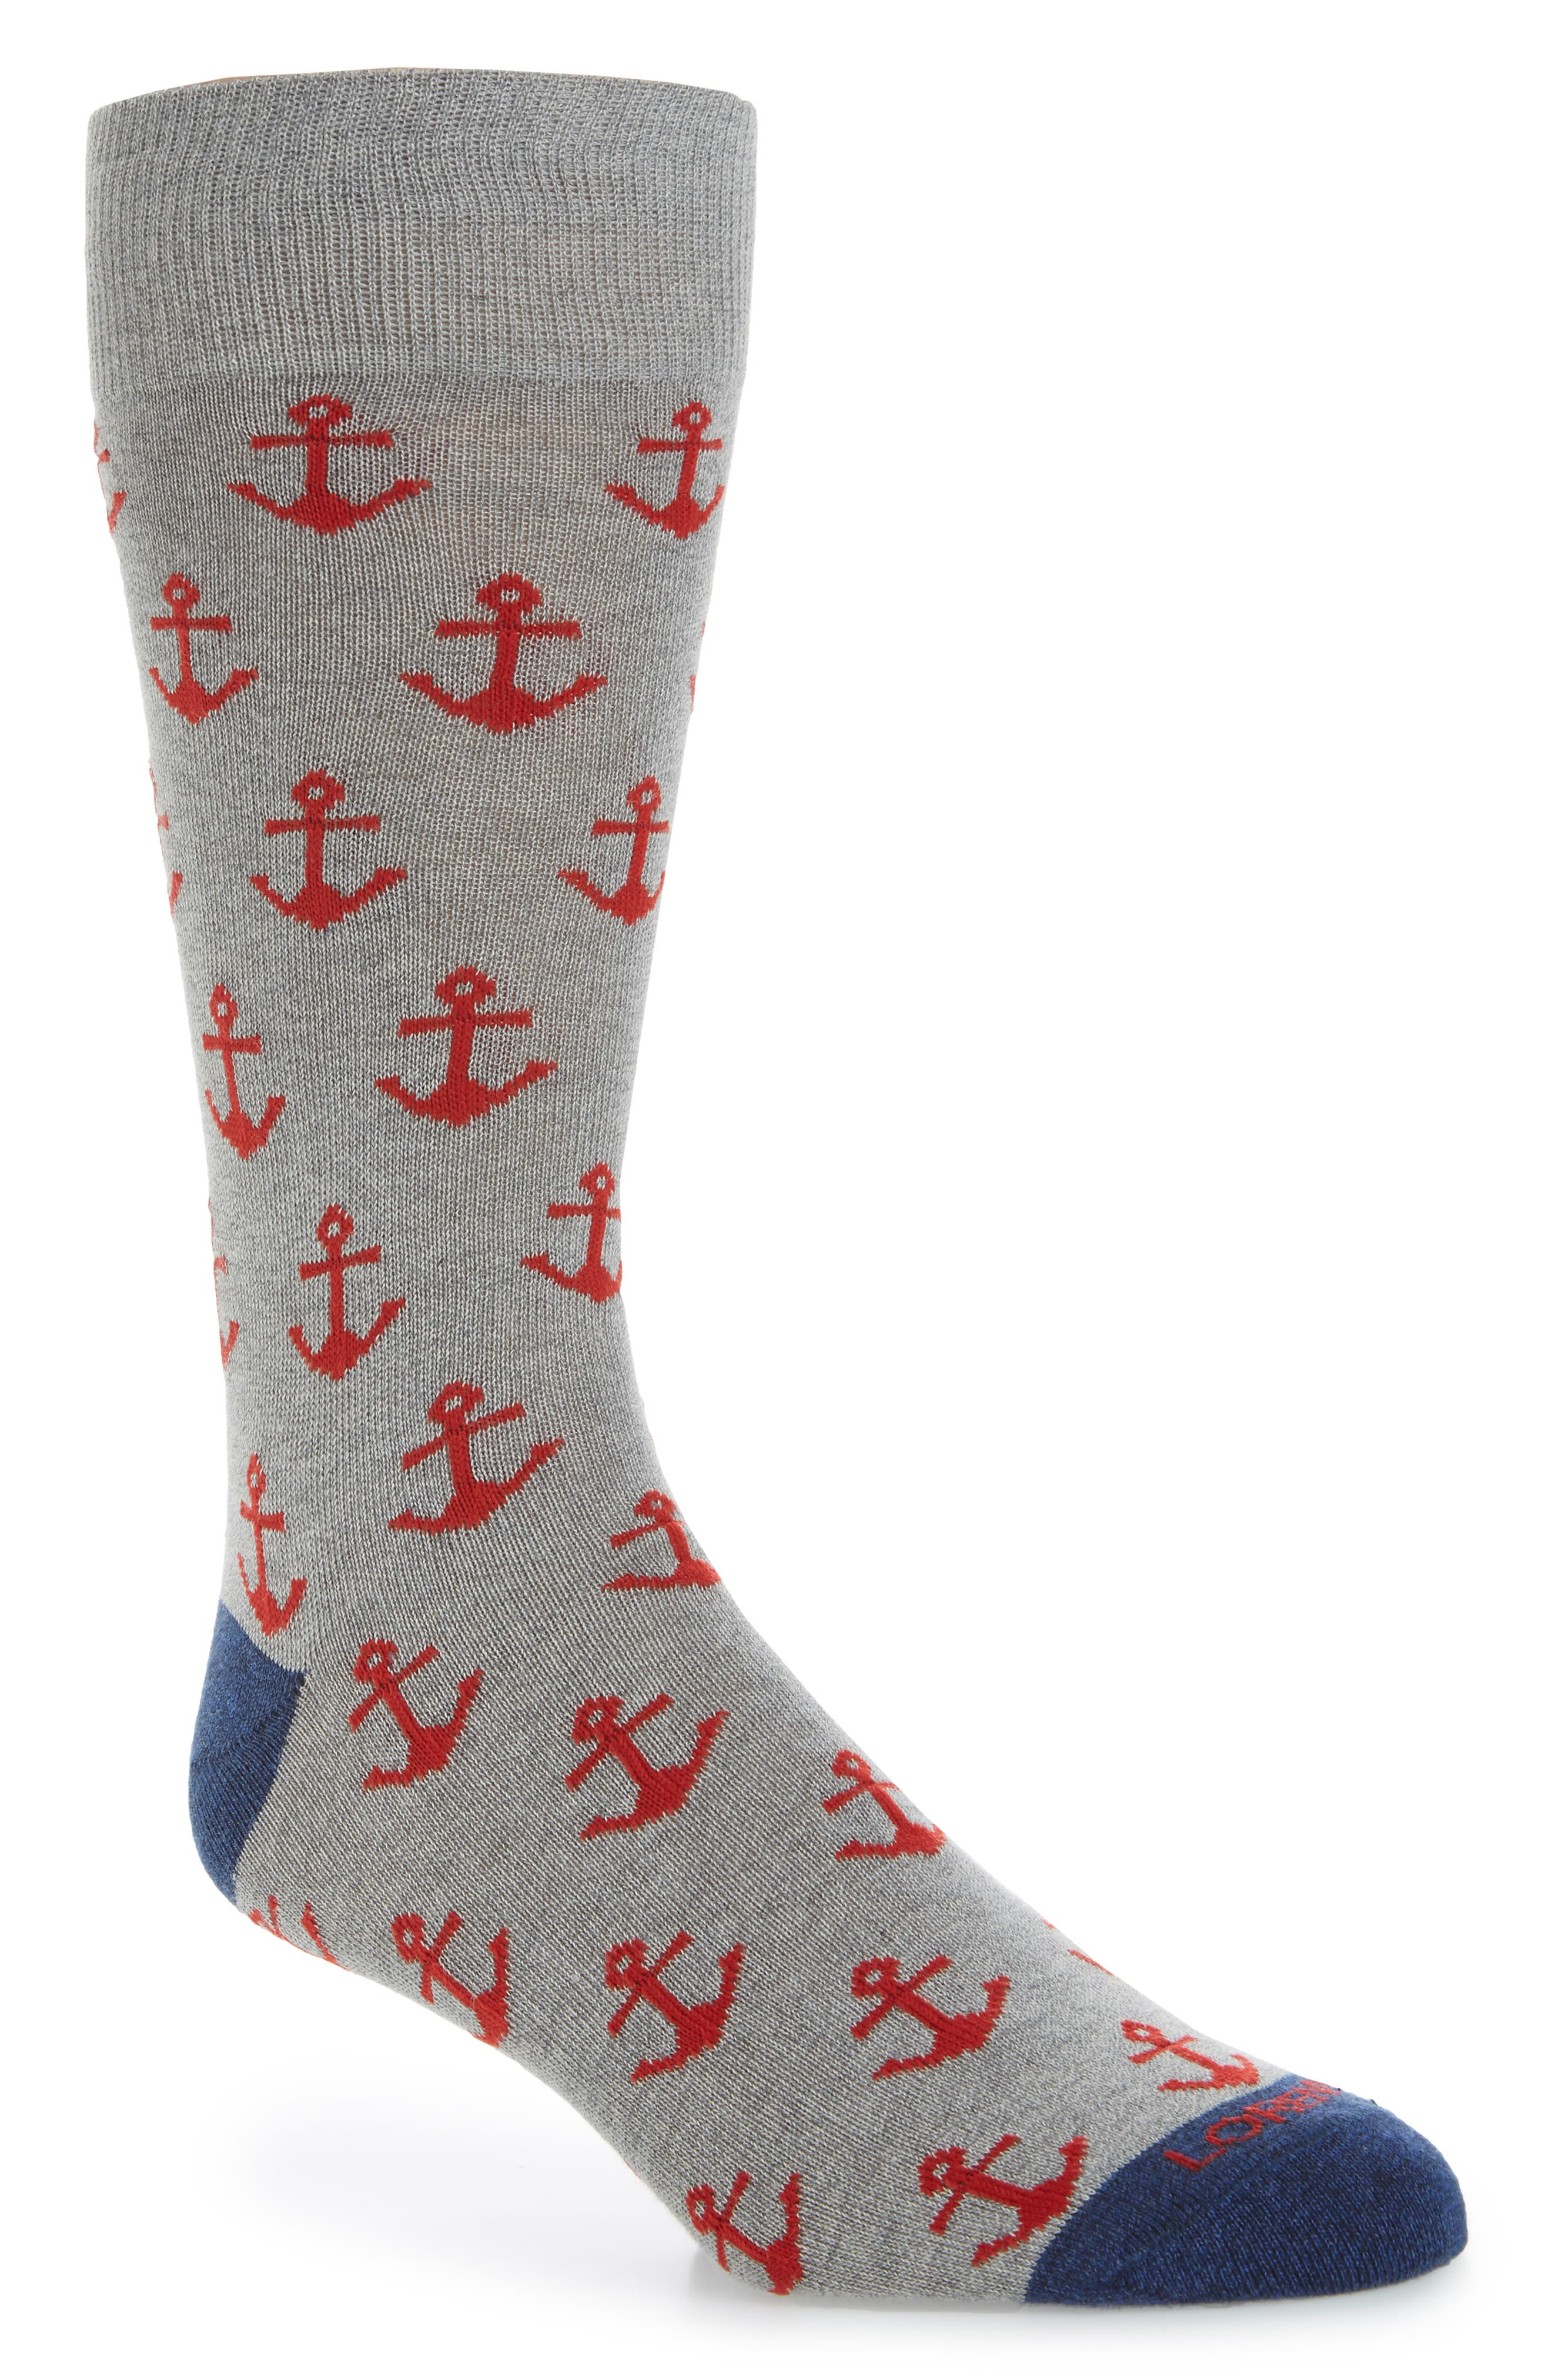 Lorenzo Uomo Anchors Crew Socks (3 for $30)